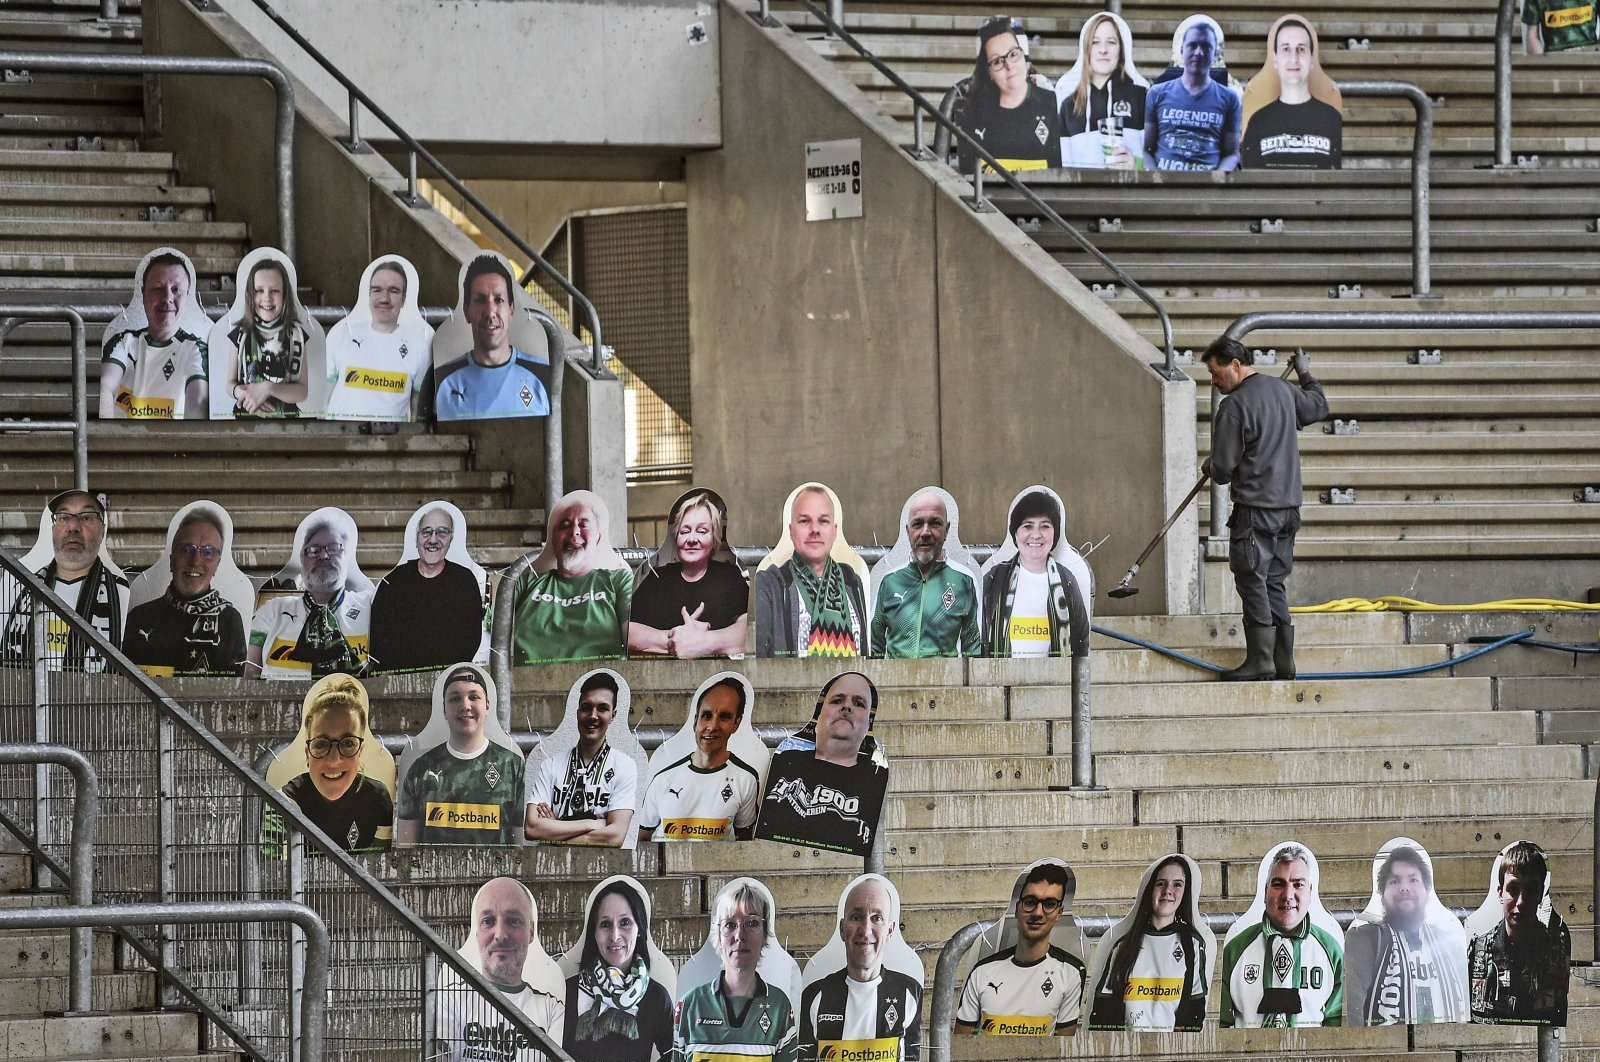 A worker cleans the supporters' tribune where portraits of fans of German Bundesliga soccer club Borussia Moenchengladbach are set in the stadium in Moenchengladbach, Germany, April 16, 2020. (AP Photo)